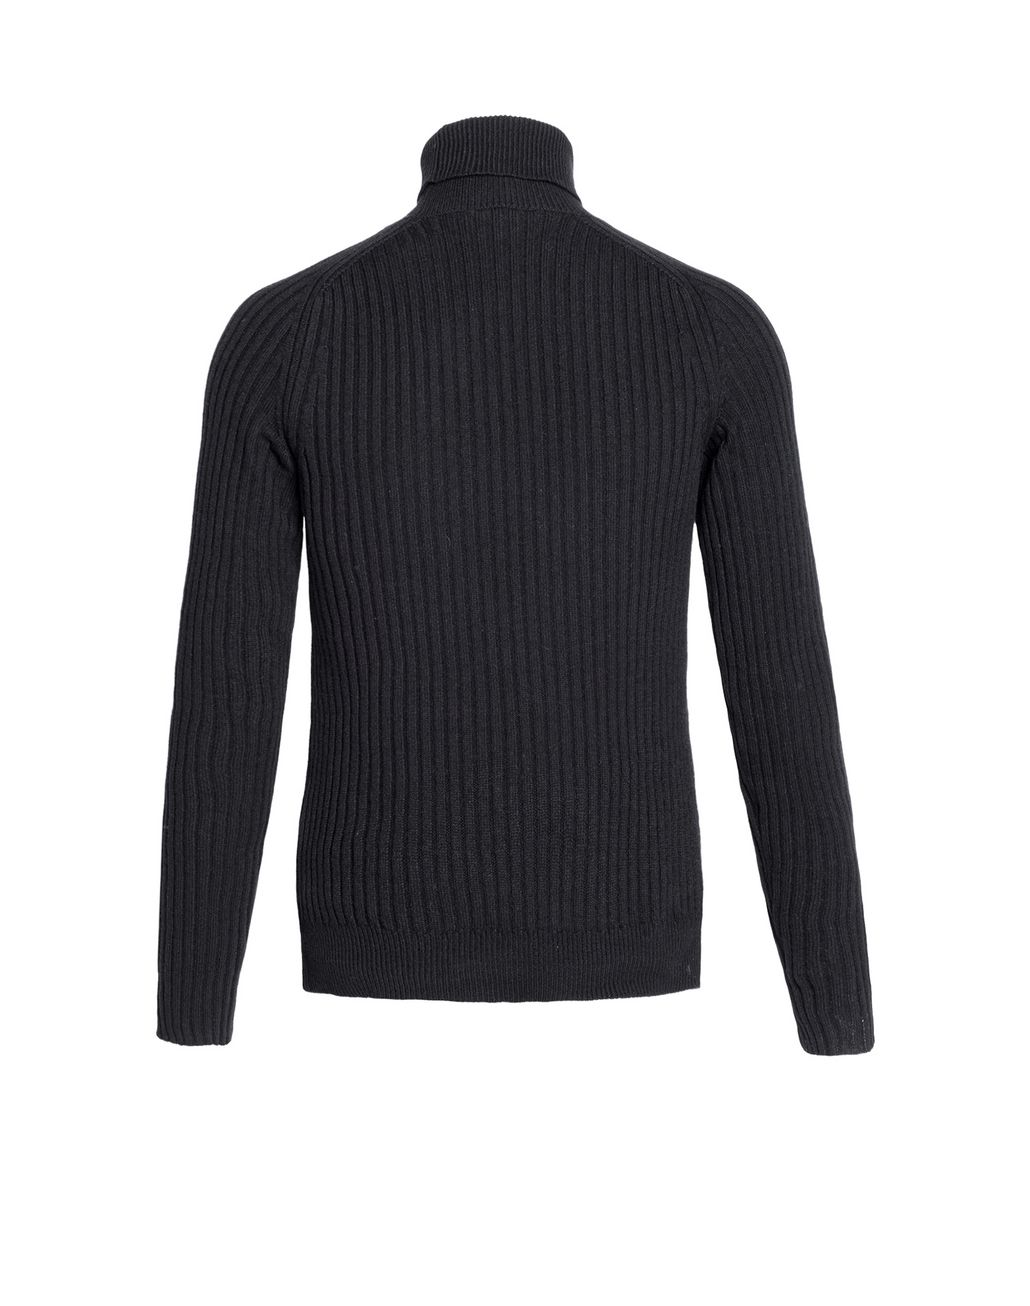 BRIONI Black Cashmere Ribbed Turtleneck Sweater Knitwear Man d